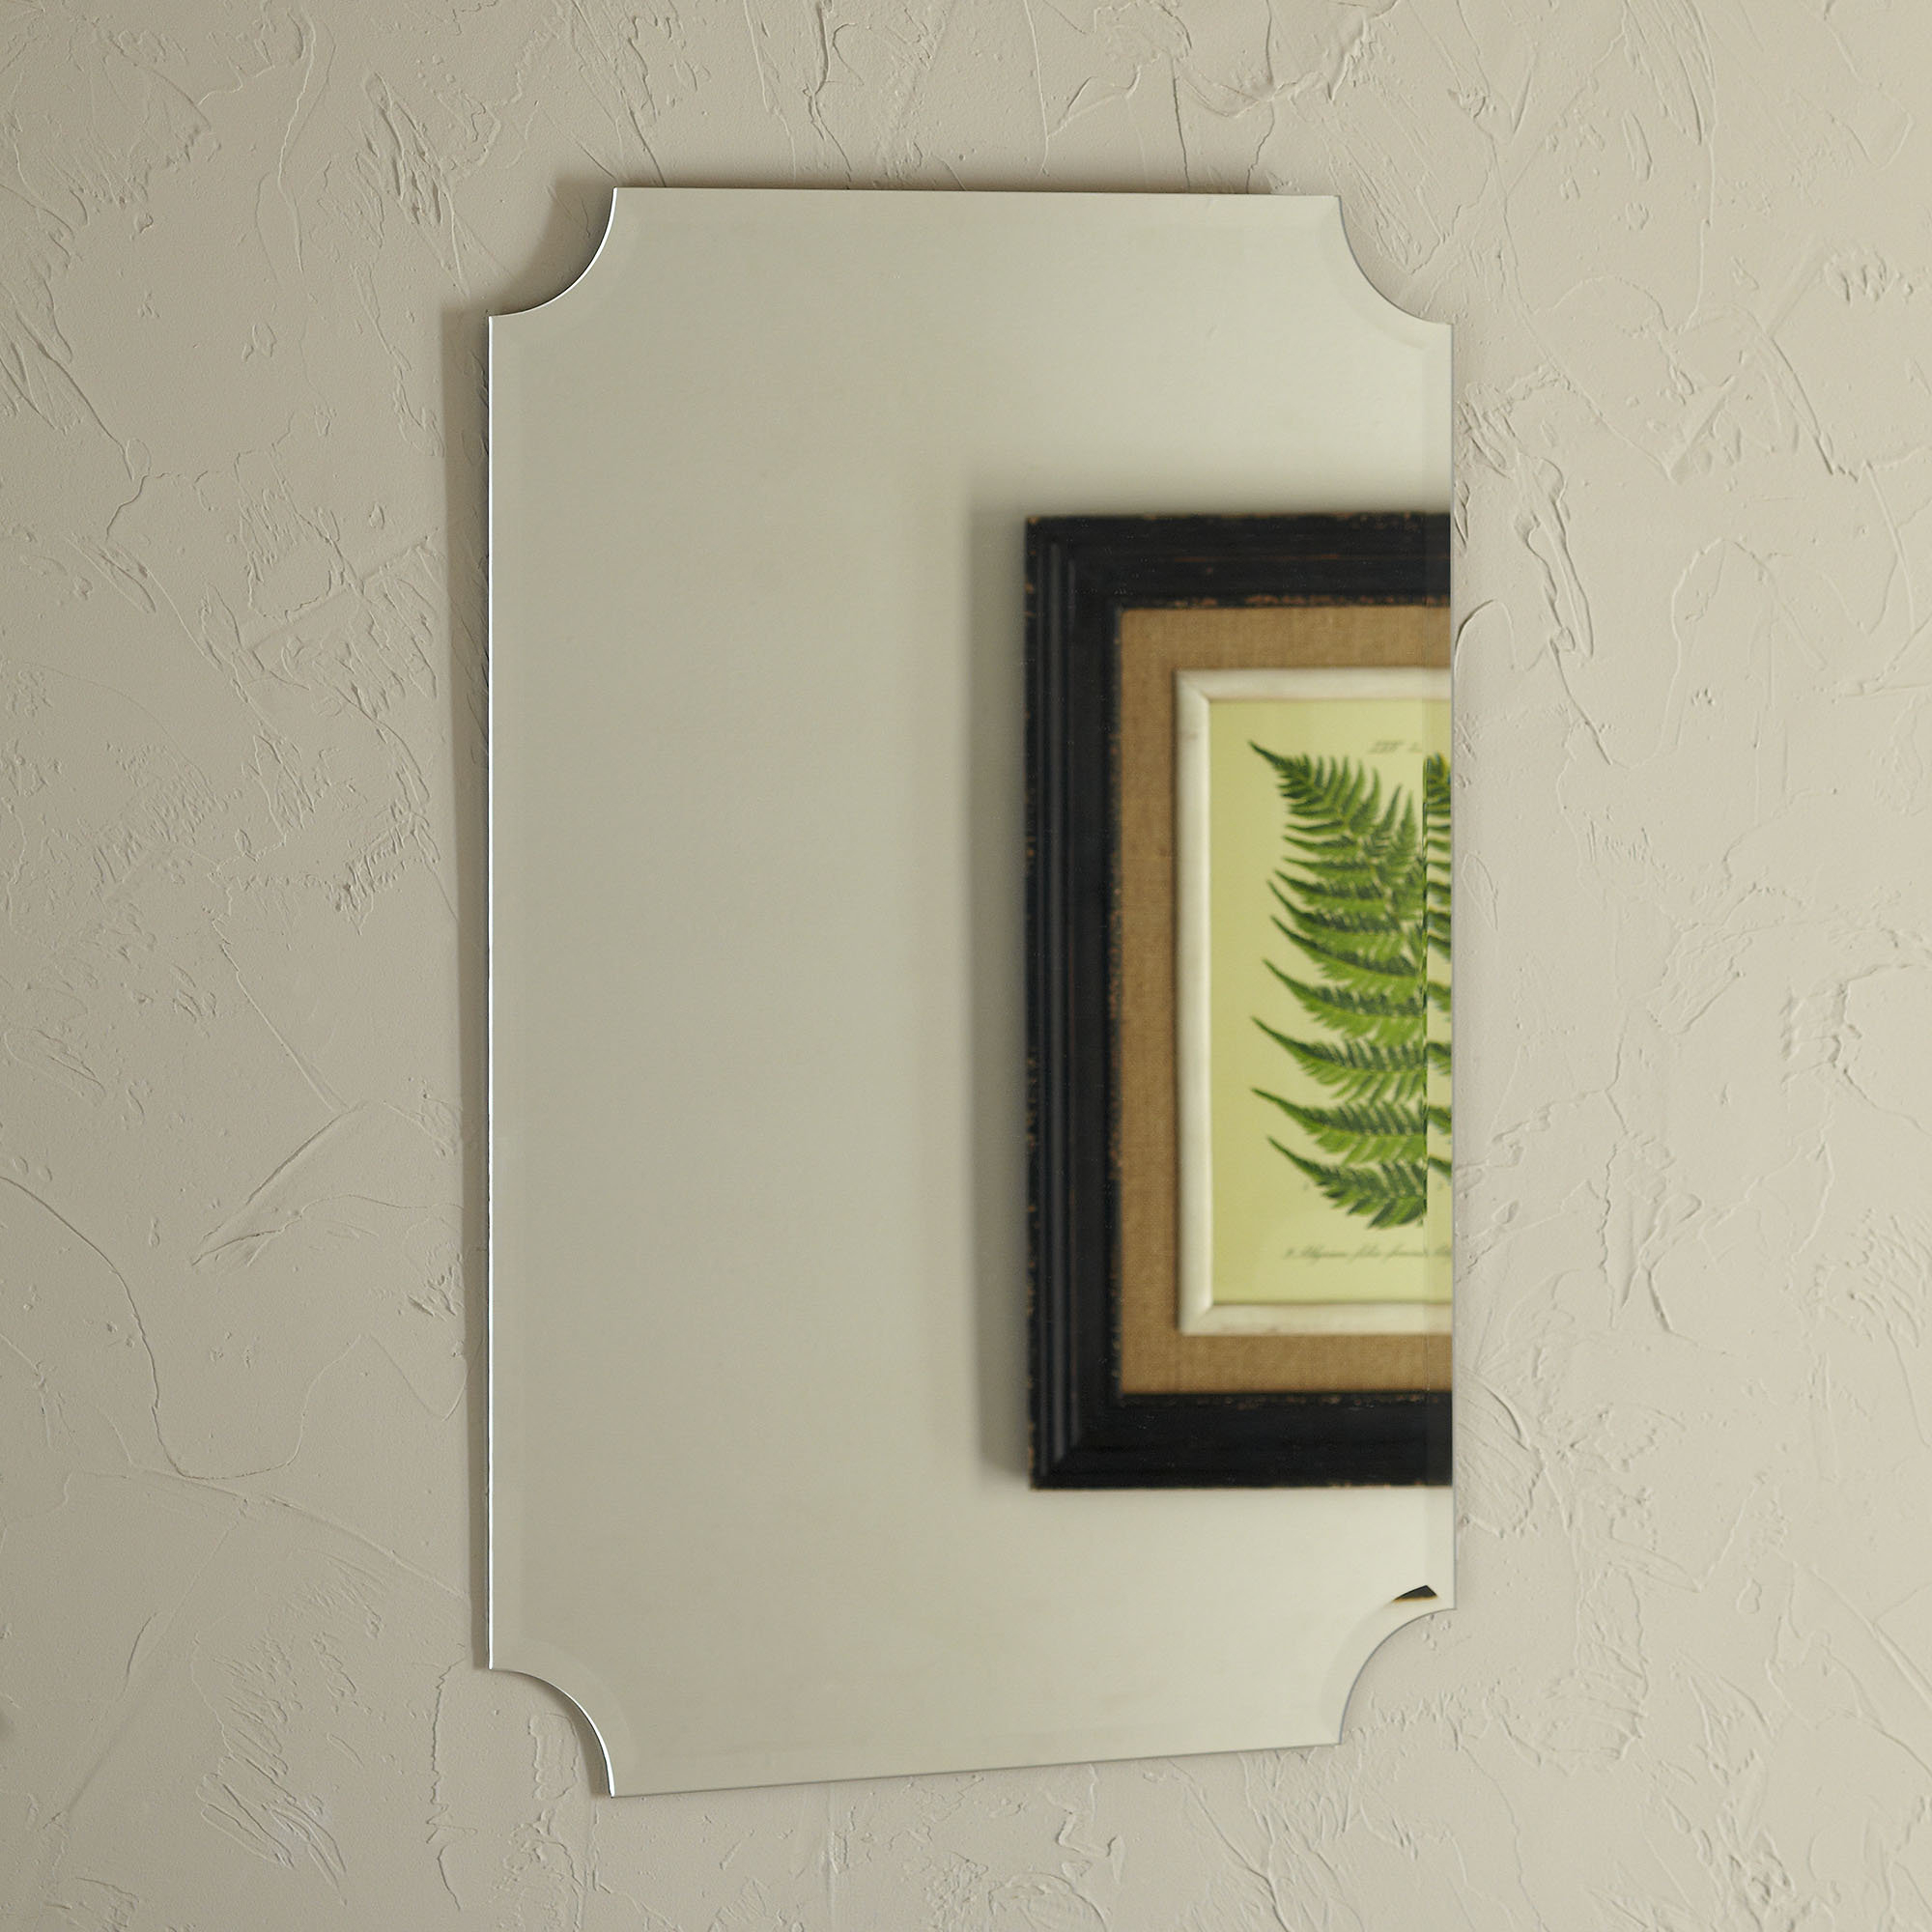 Guilherme Modern & Contemporary Accent Mirror Pertaining To Famous Guidinha Modern & Contemporary Accent Mirrors (Gallery 5 of 20)